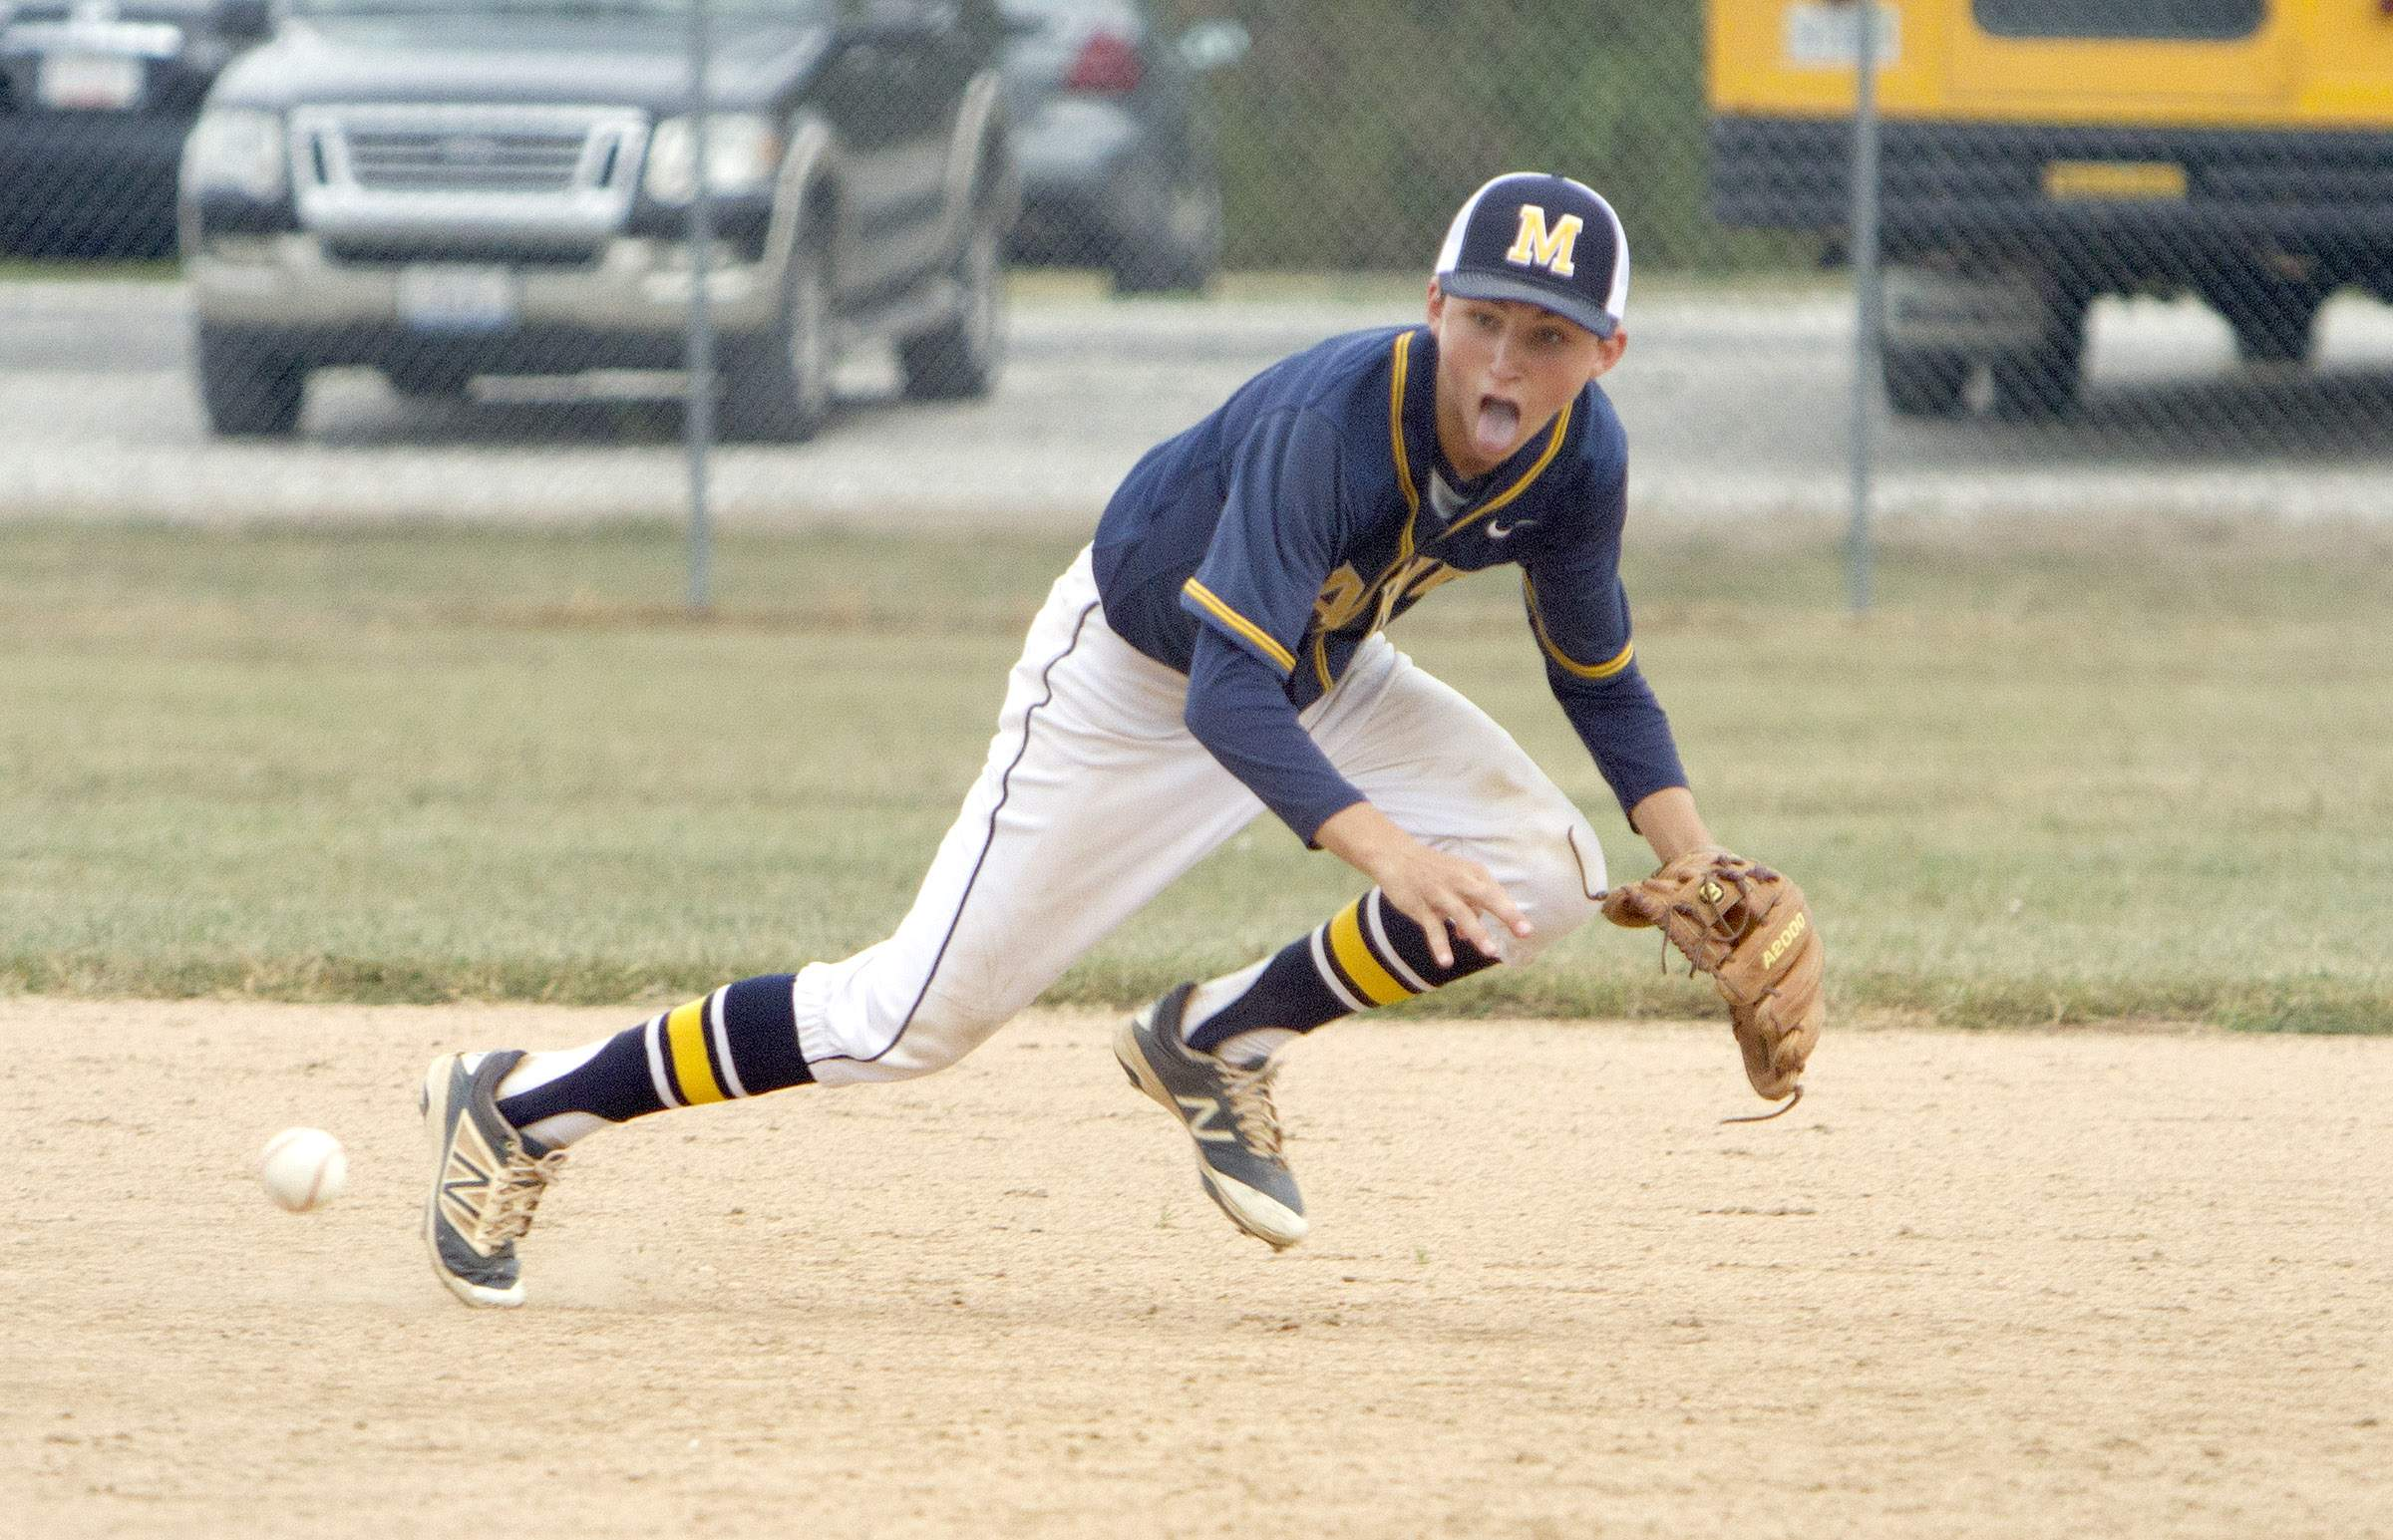 Mason Gooch dives for a grounder.